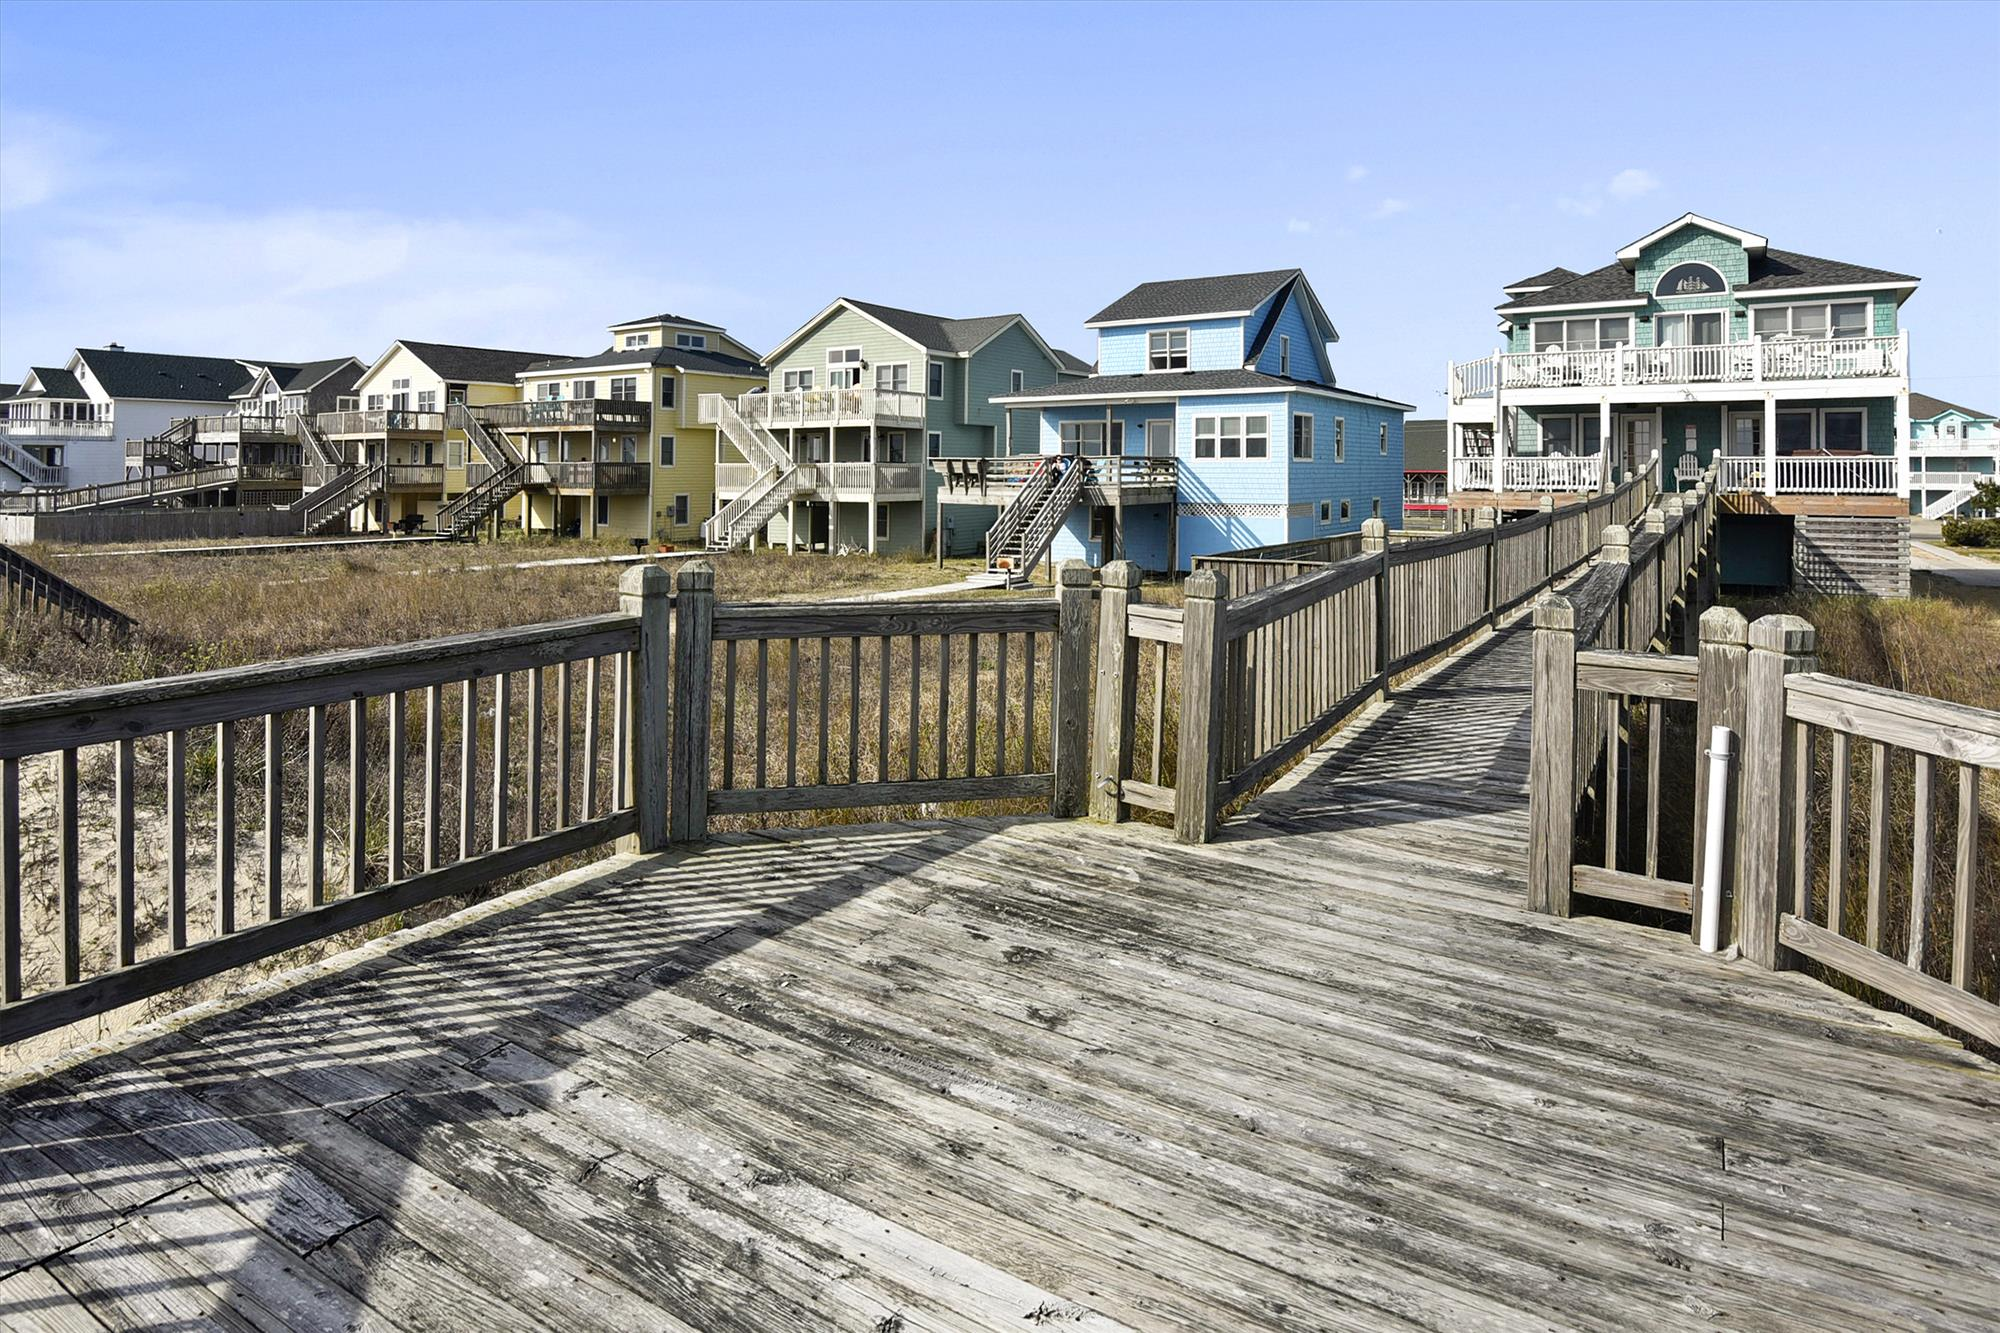 Middle/Entry Level,Beach Deck,